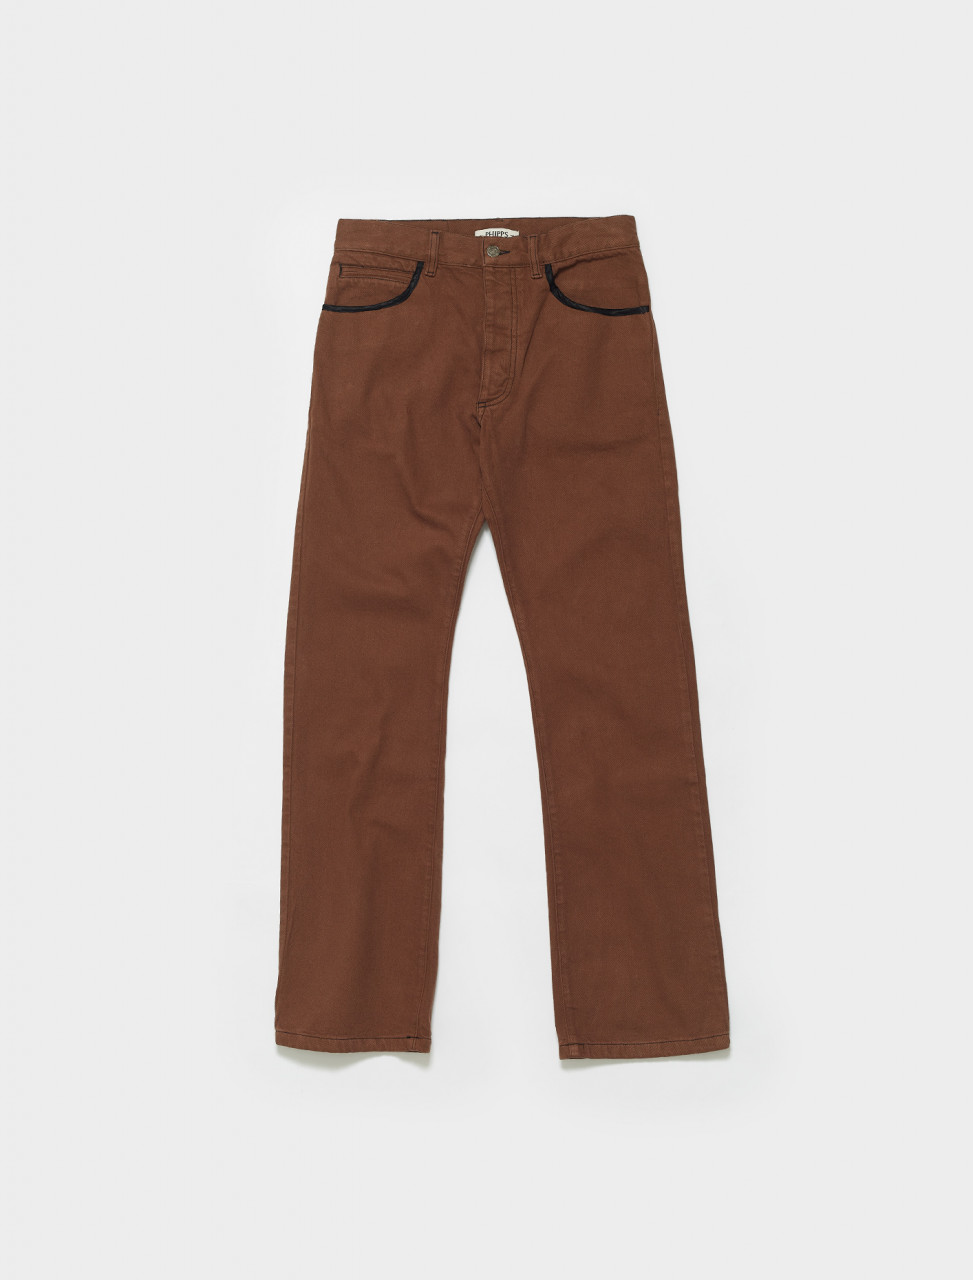 PHSS21-P18-C005 PHIPPS BOOT CUT JEANS SADDLE BROWN